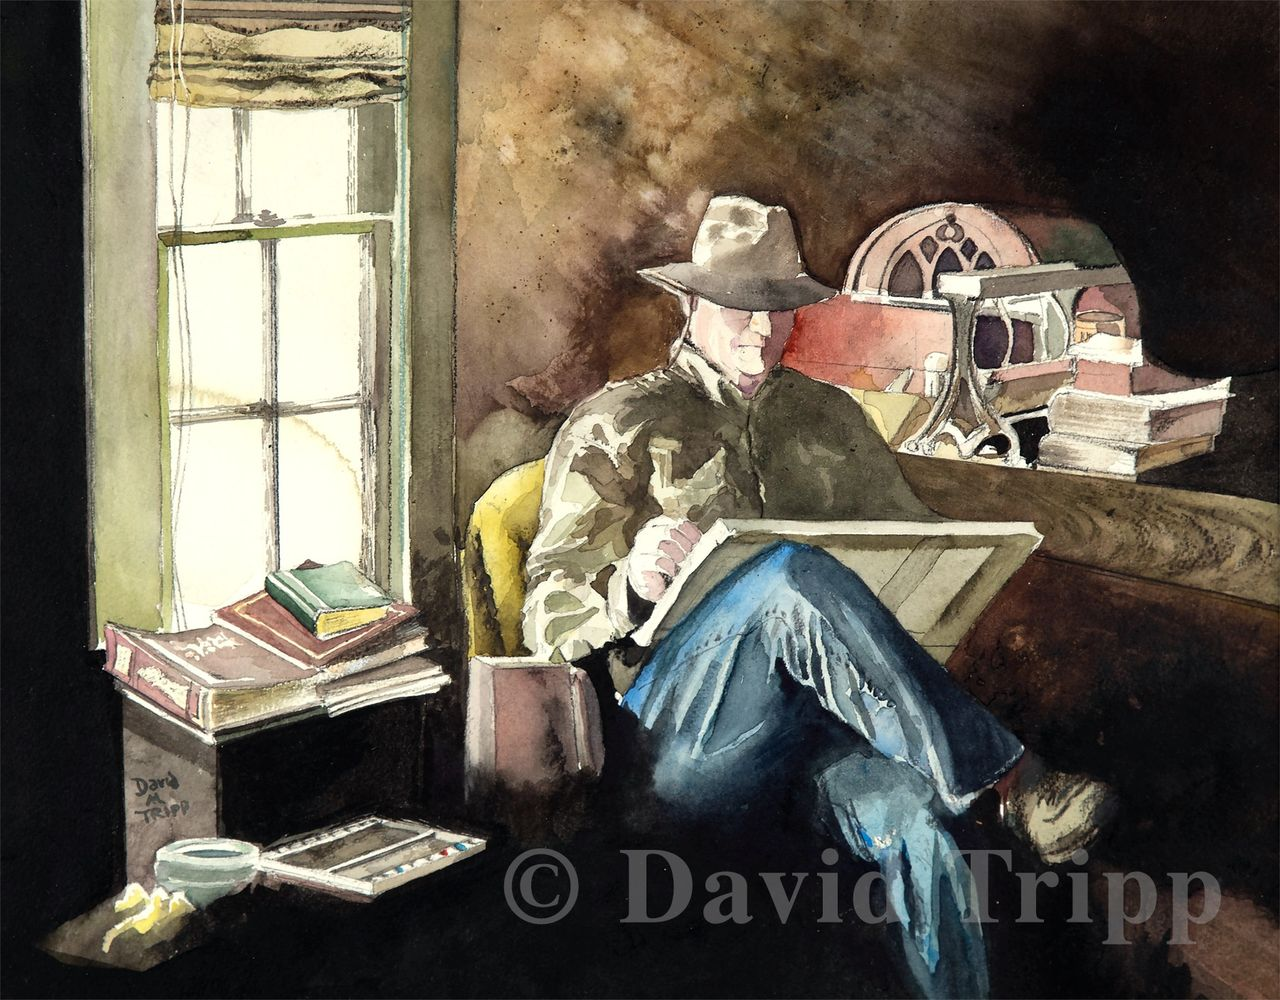 Self Portrait by David Tripp